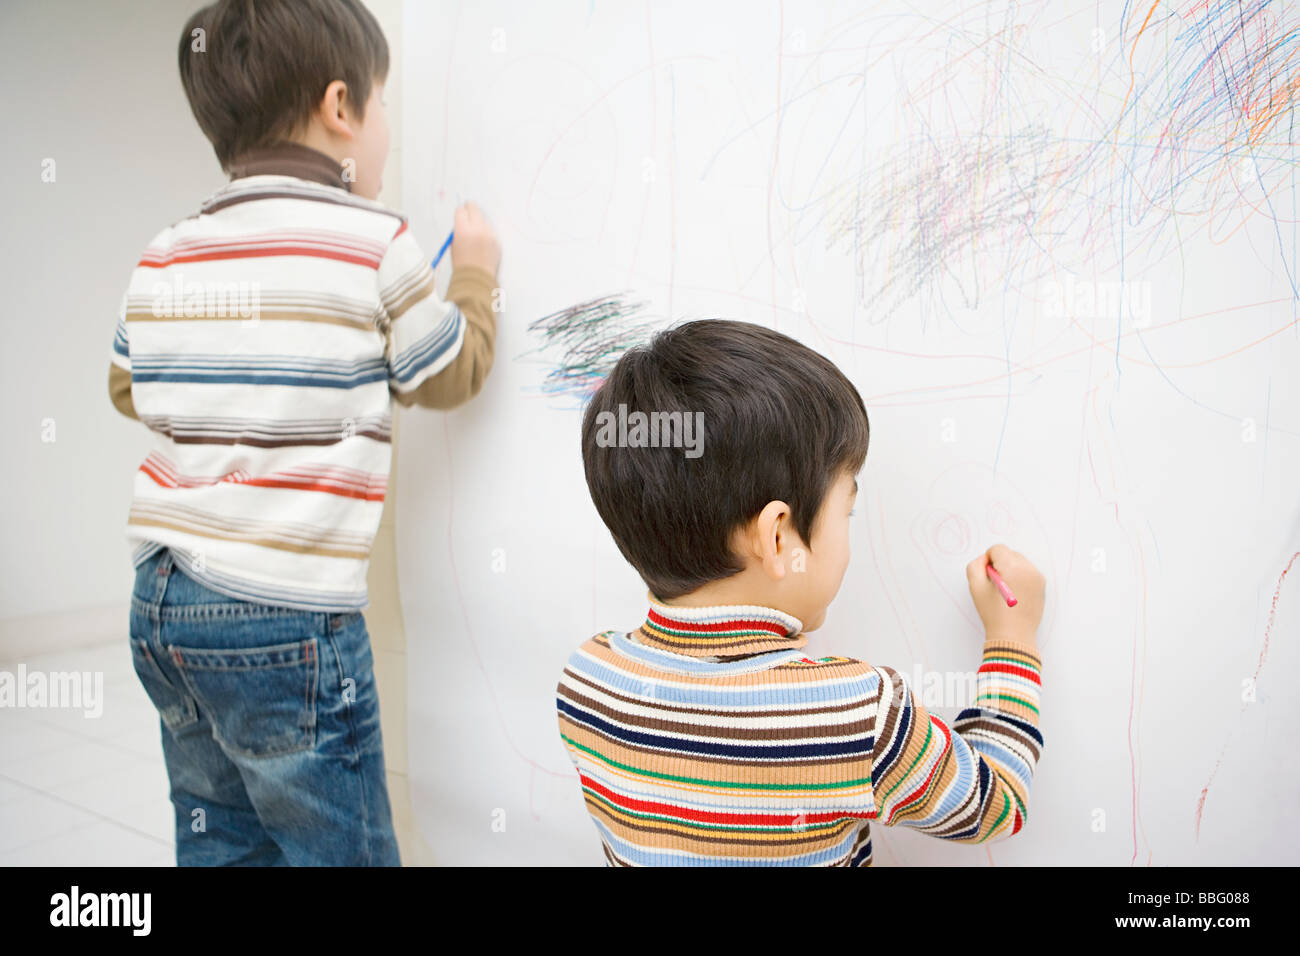 Boys drawing on a wall - Stock Image